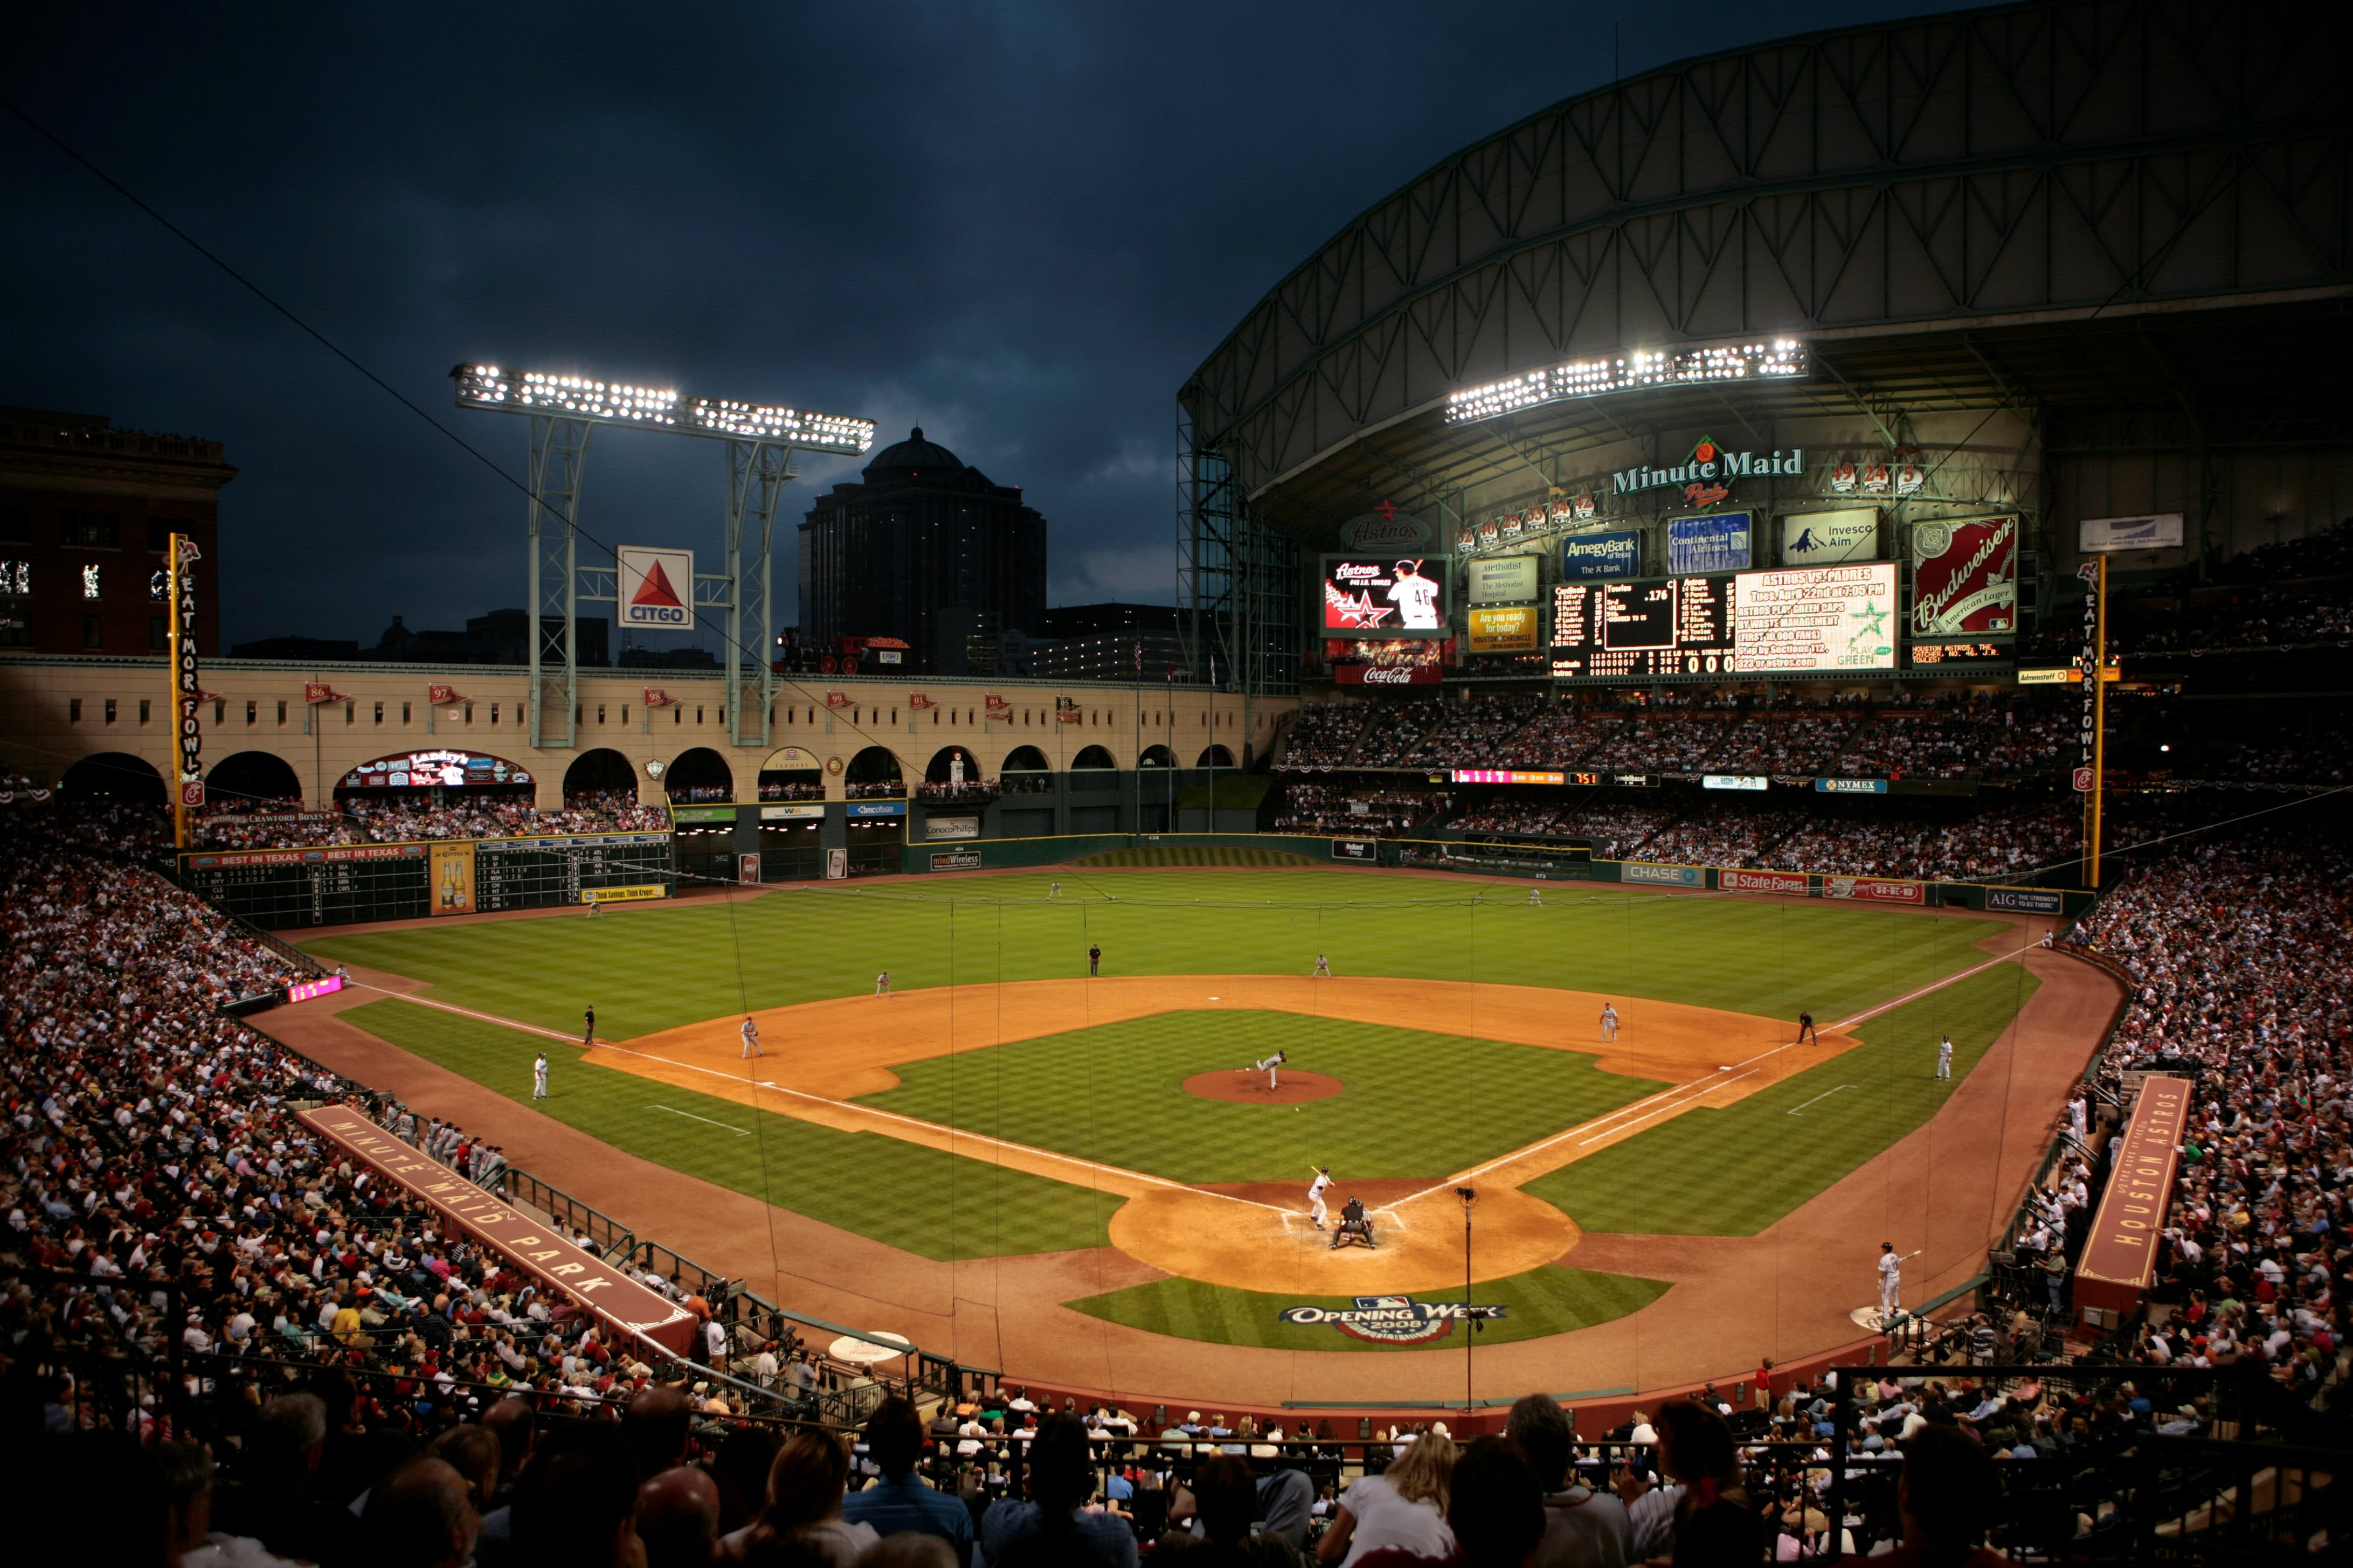 minute maid park at night